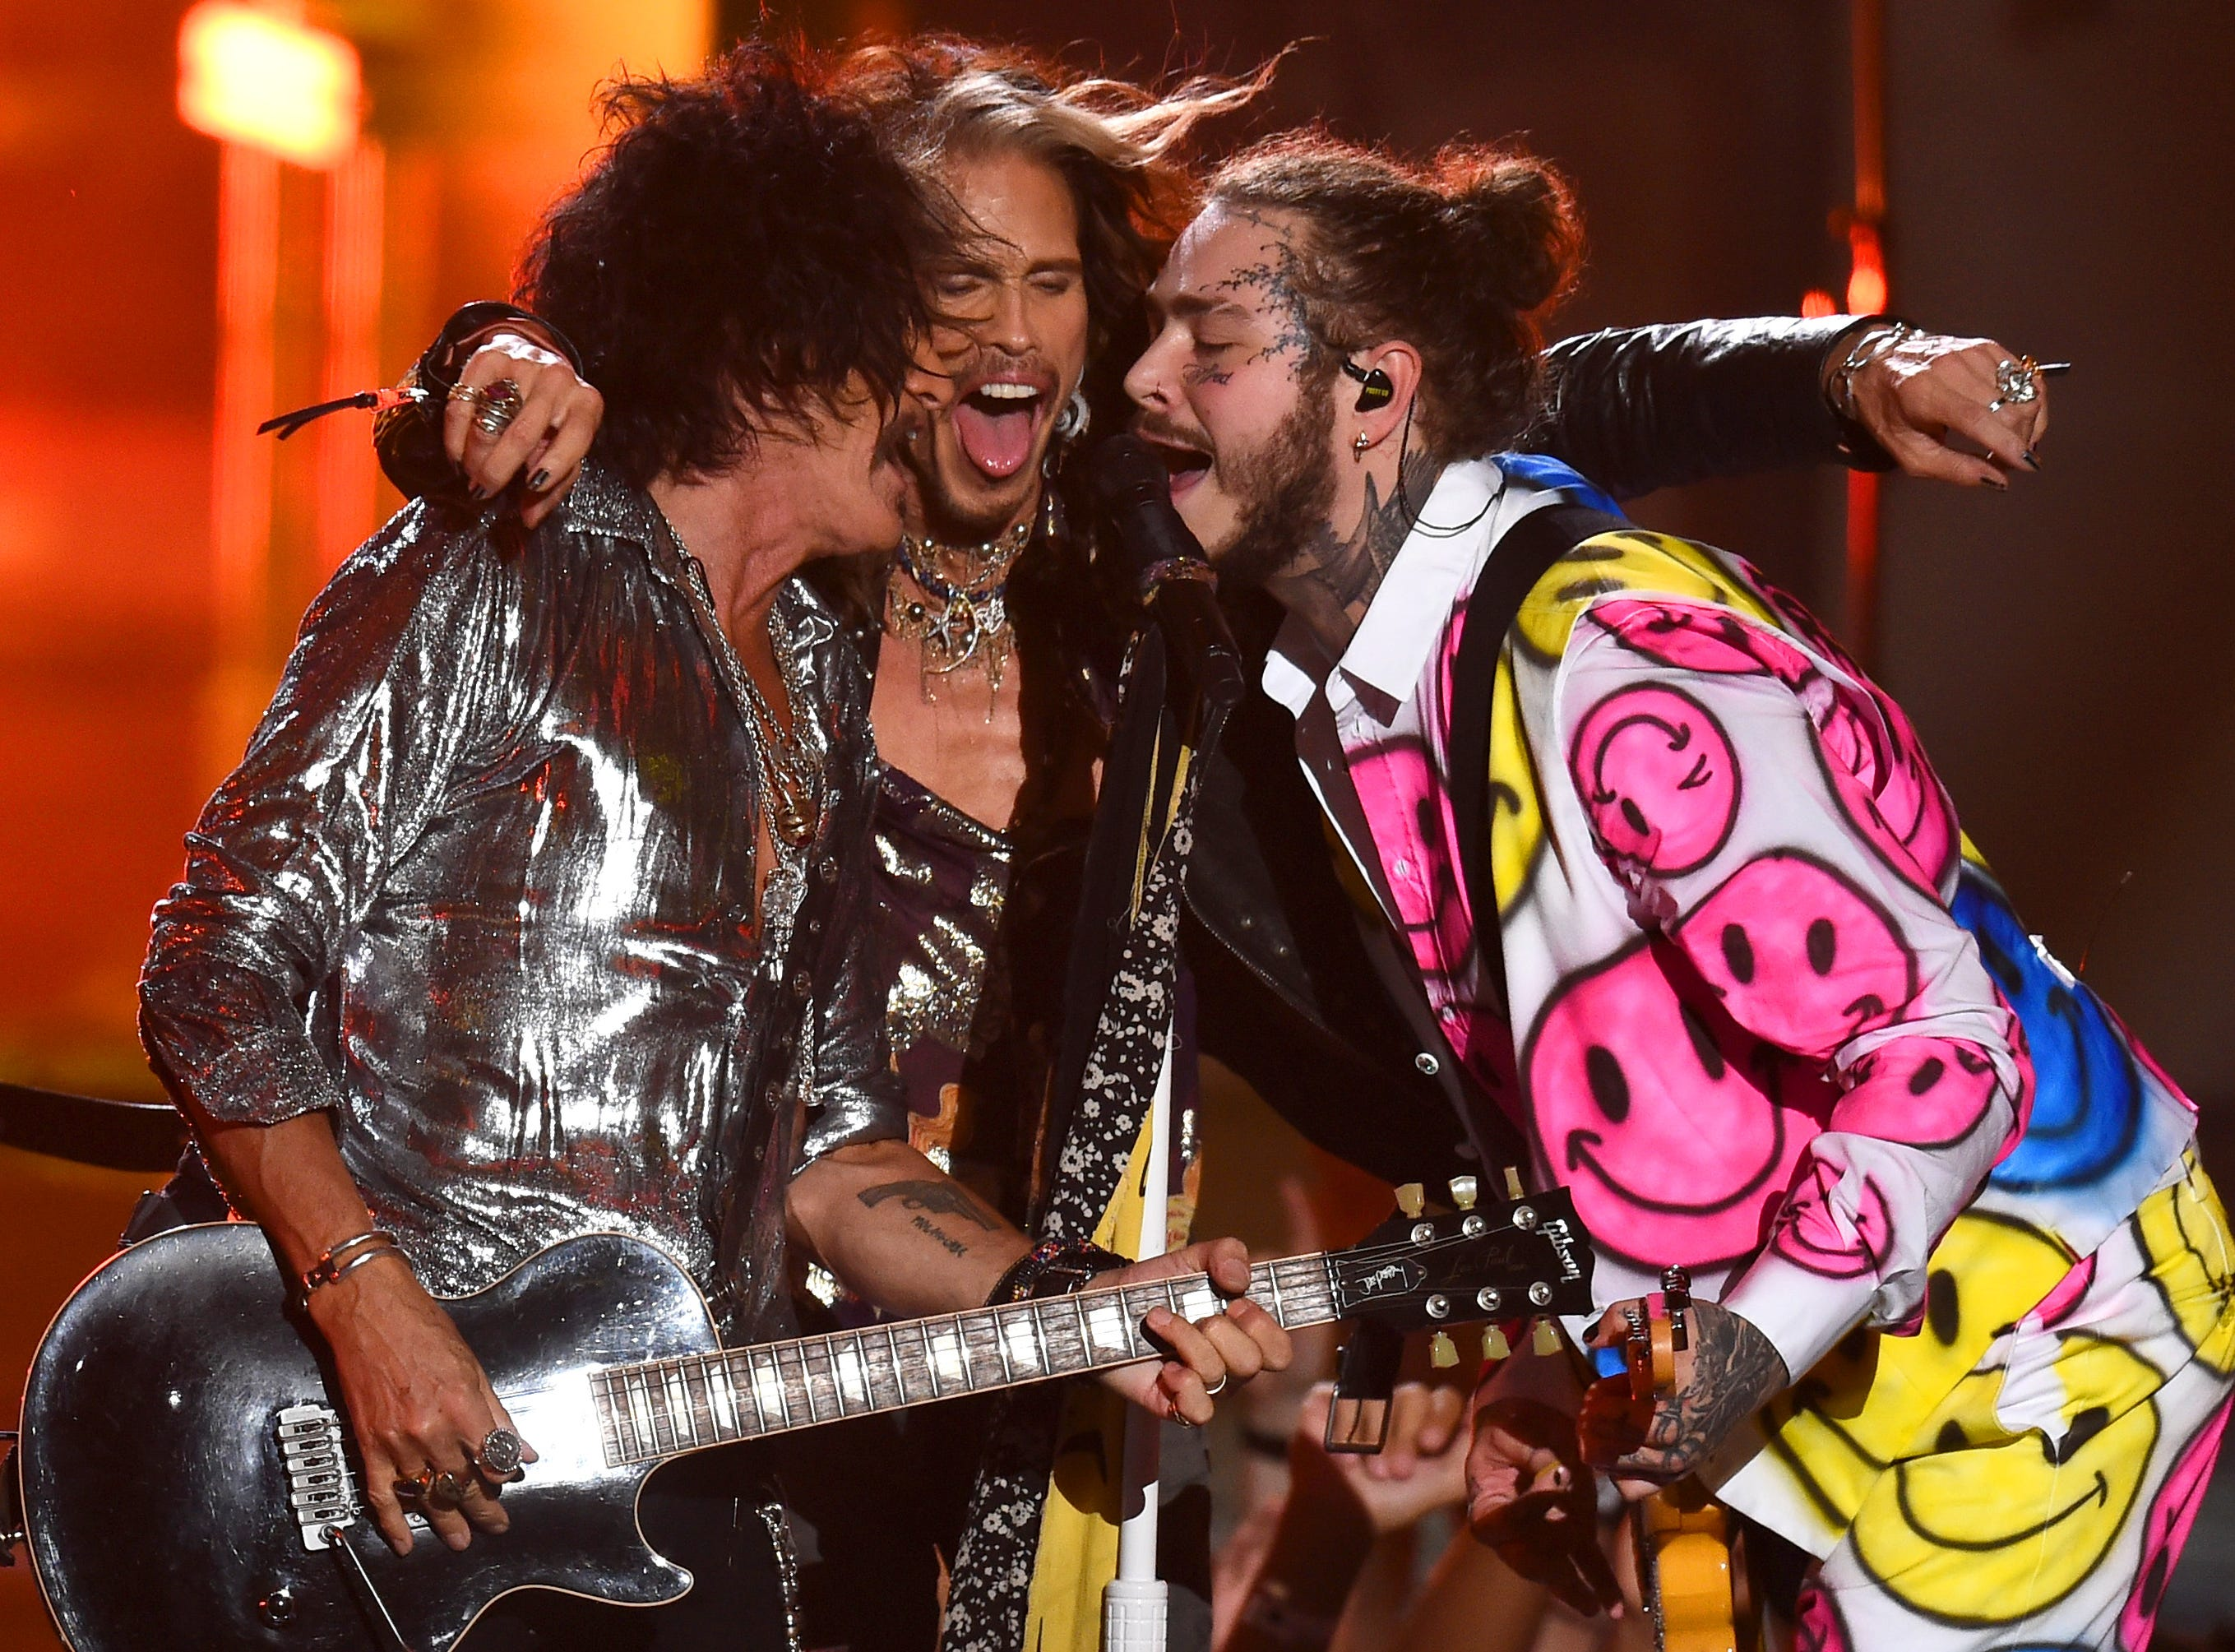 NEW YORK, NY - AUGUST 20:  (L-R) Joe Perry, Steven Tyler, and Post Malone perform onstage during the 2018 MTV Video Music Awards at Radio City Music Hall on August 20, 2018 in New York City.  (Photo by Theo Wargo/Getty Images) ORG XMIT: 775210297 ORIG FILE ID: 1020410000